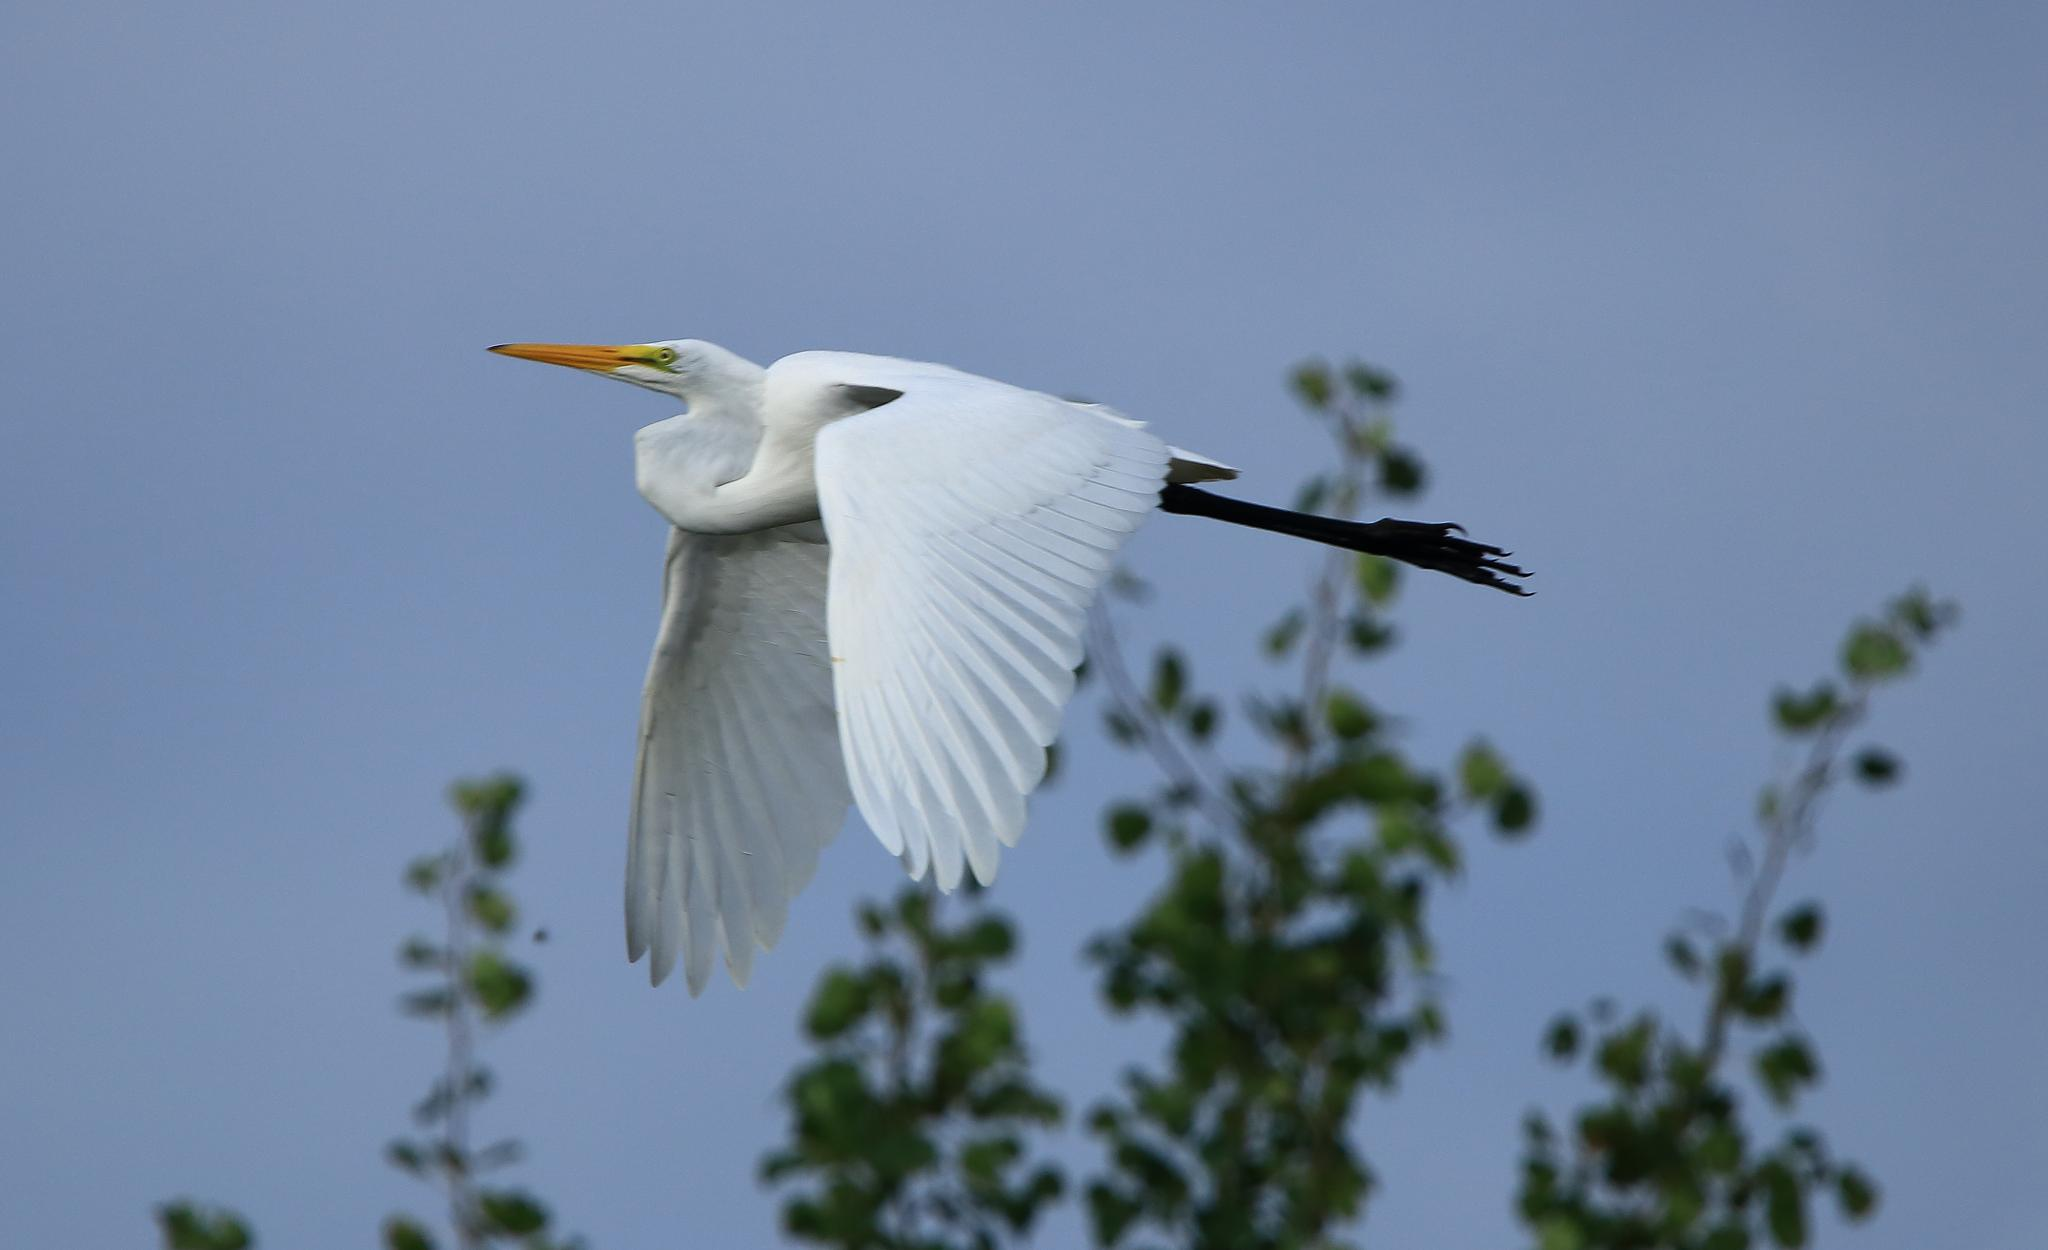 Great Egret in flight by Ricky Wong